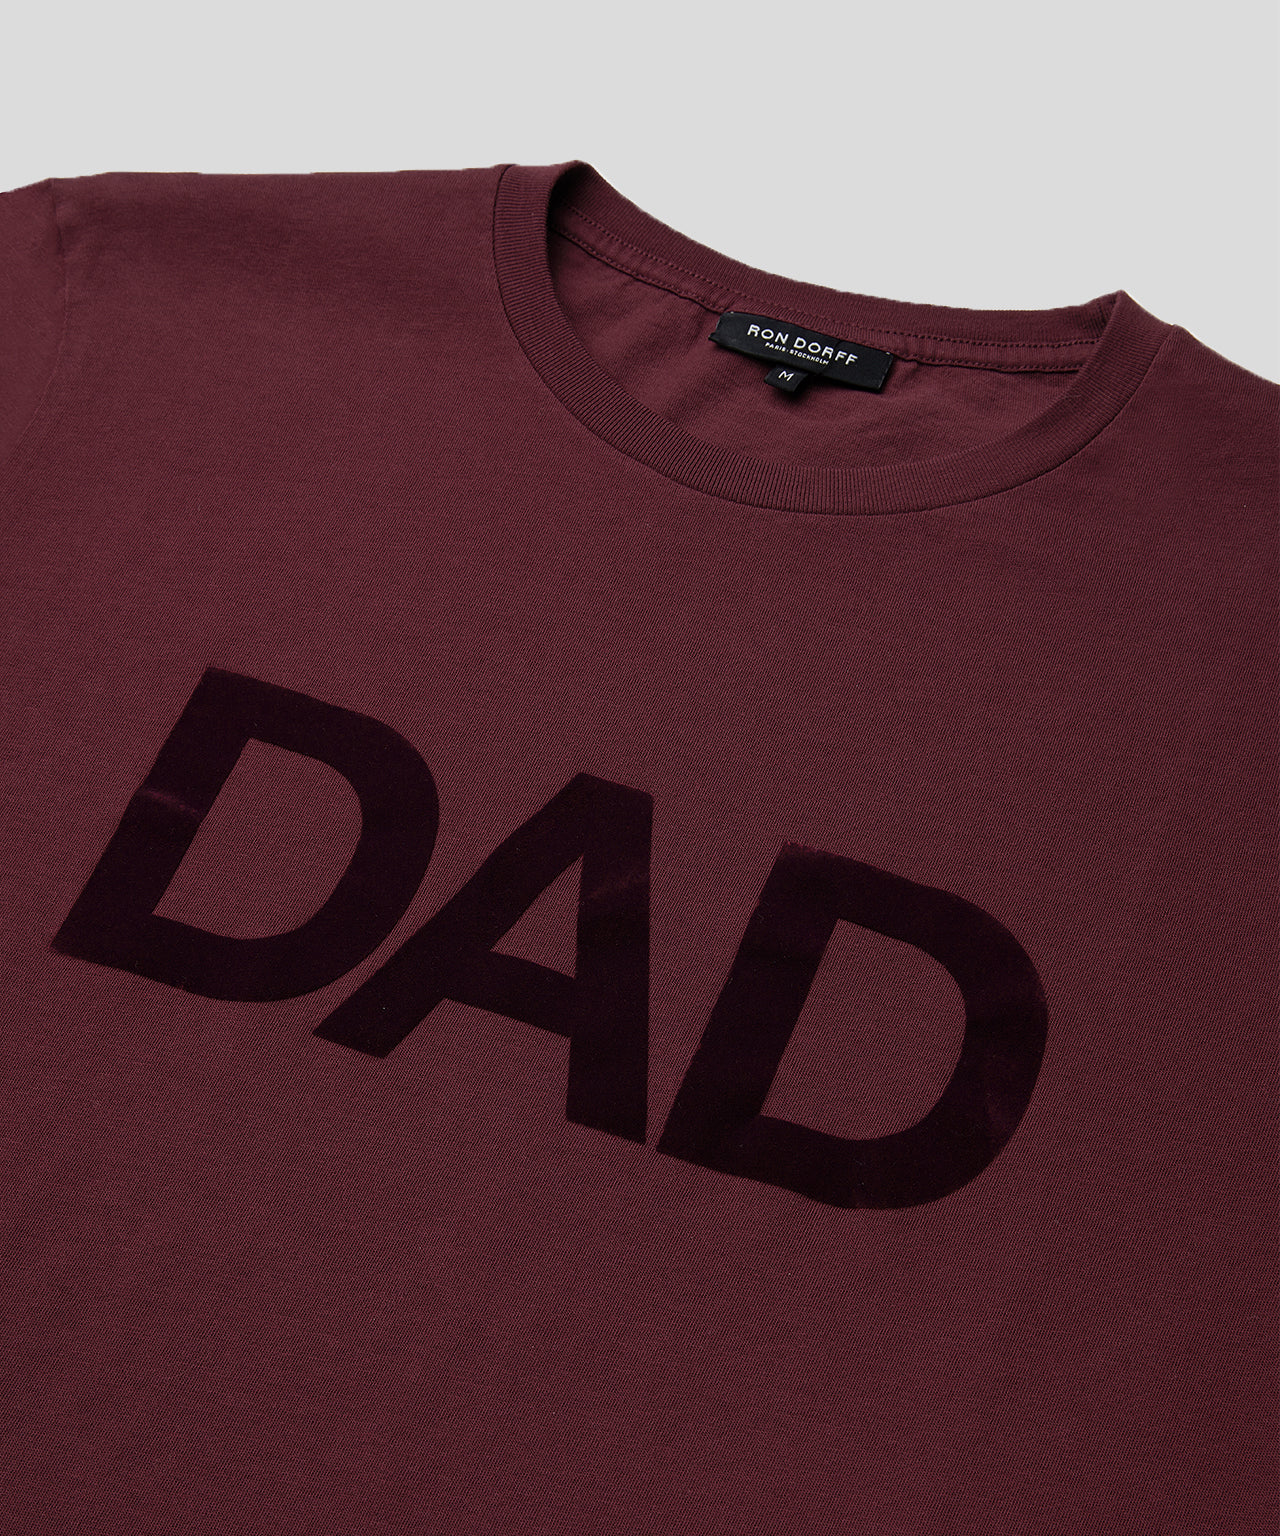 T-Shirt DAD - burgundy red